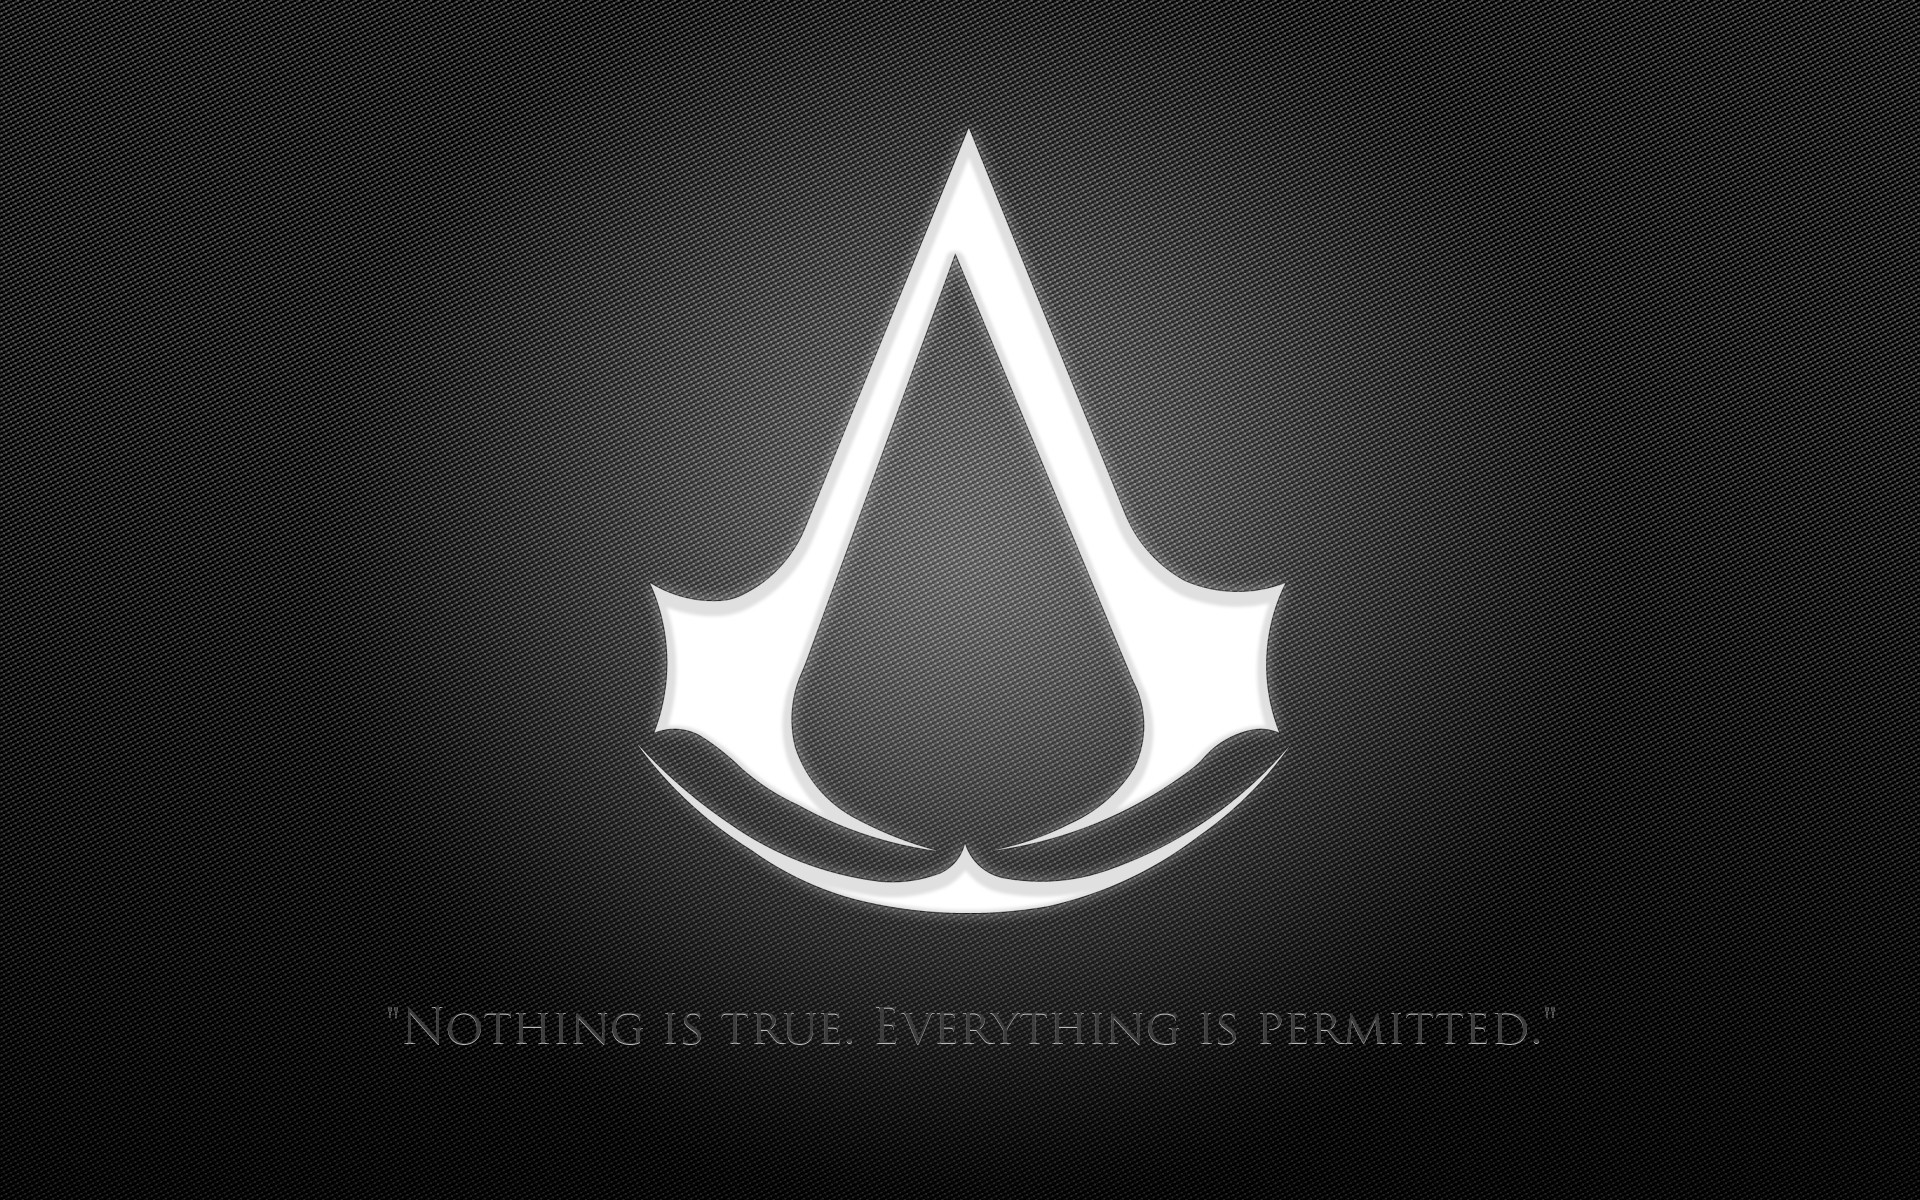 assassins creed Altair Ibn